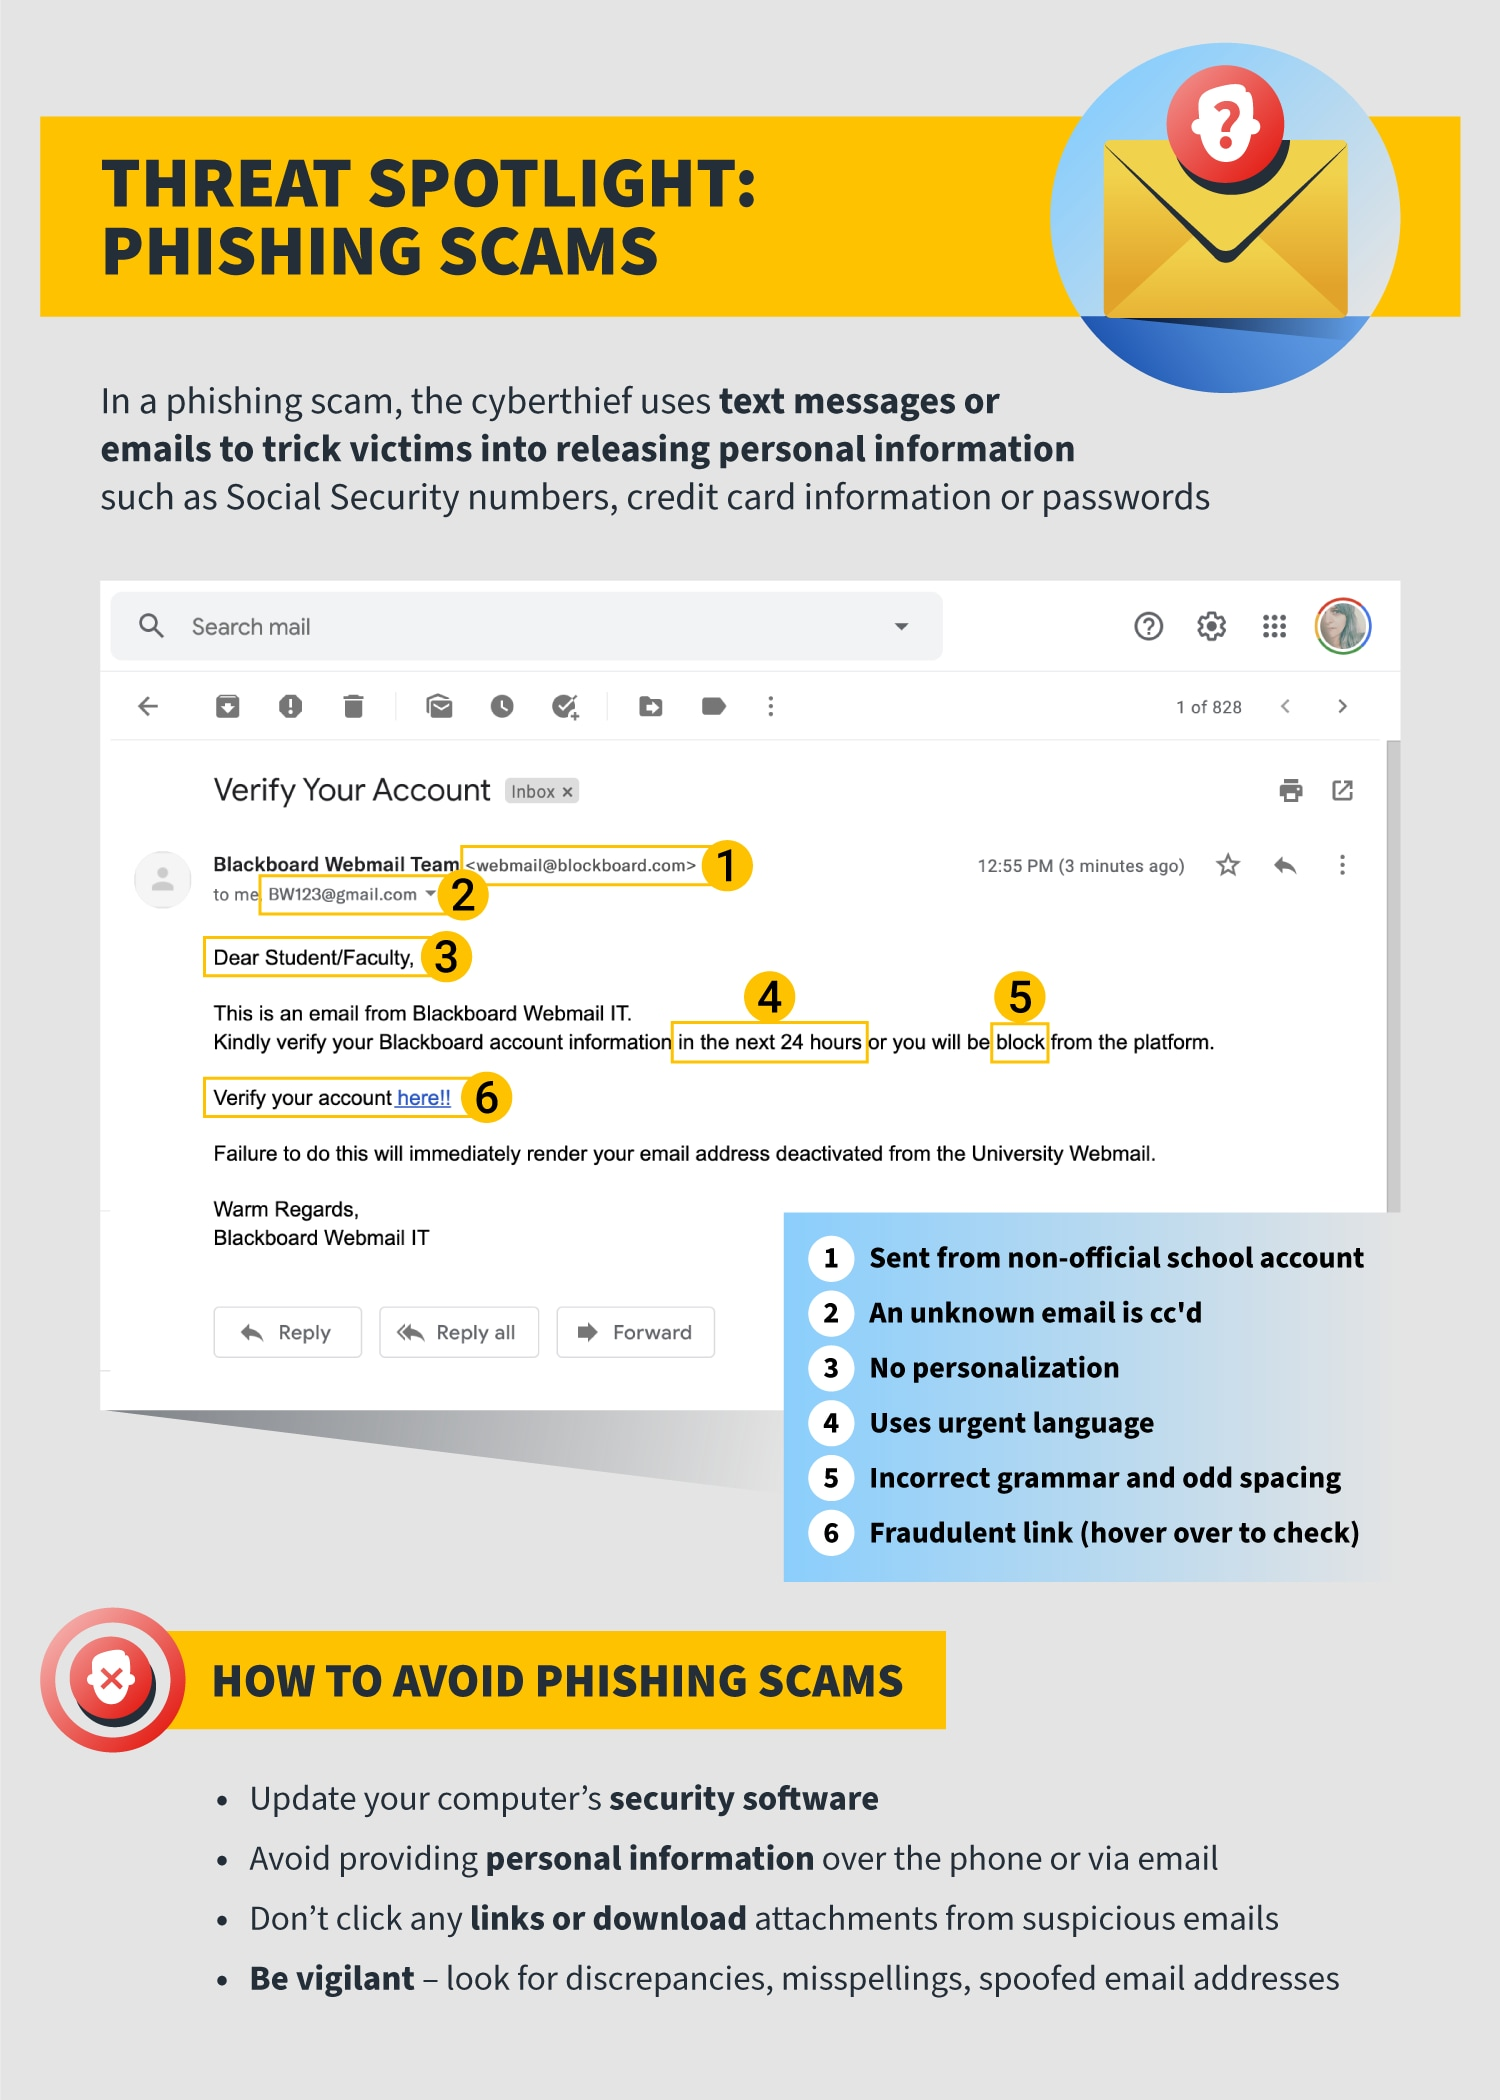 infographic on phishing scams